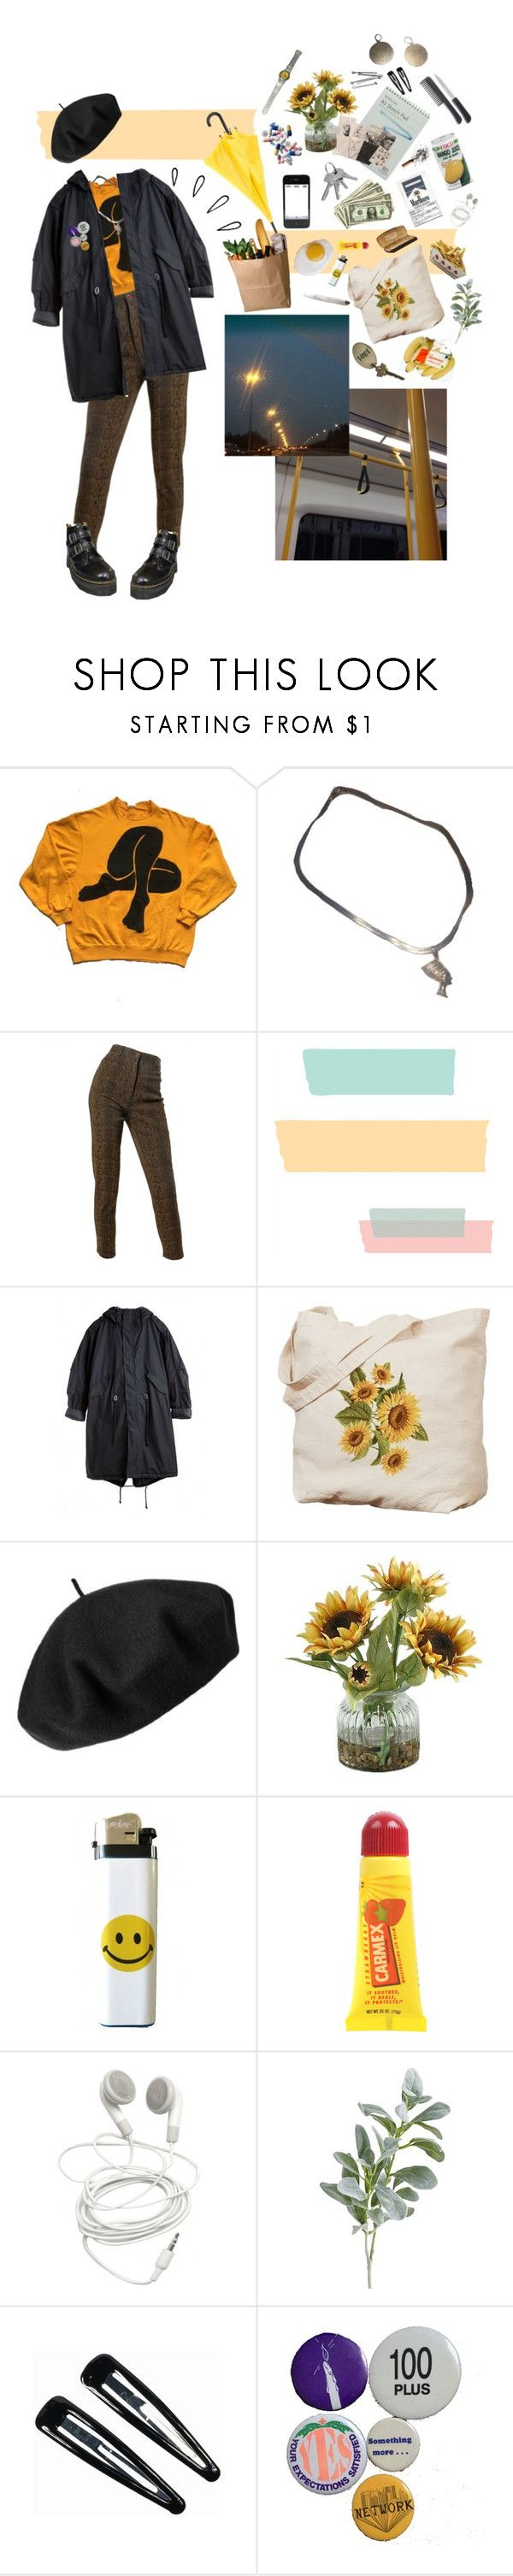 """Untitled #82"" by iwanttodieplshelp ❤ liked on Polyvore featuring Emanuel Ungaro, Betmar, Home Decorators Collection, Carmex, Pier 1 Imports, BOBBY, Clips and Old Navy"